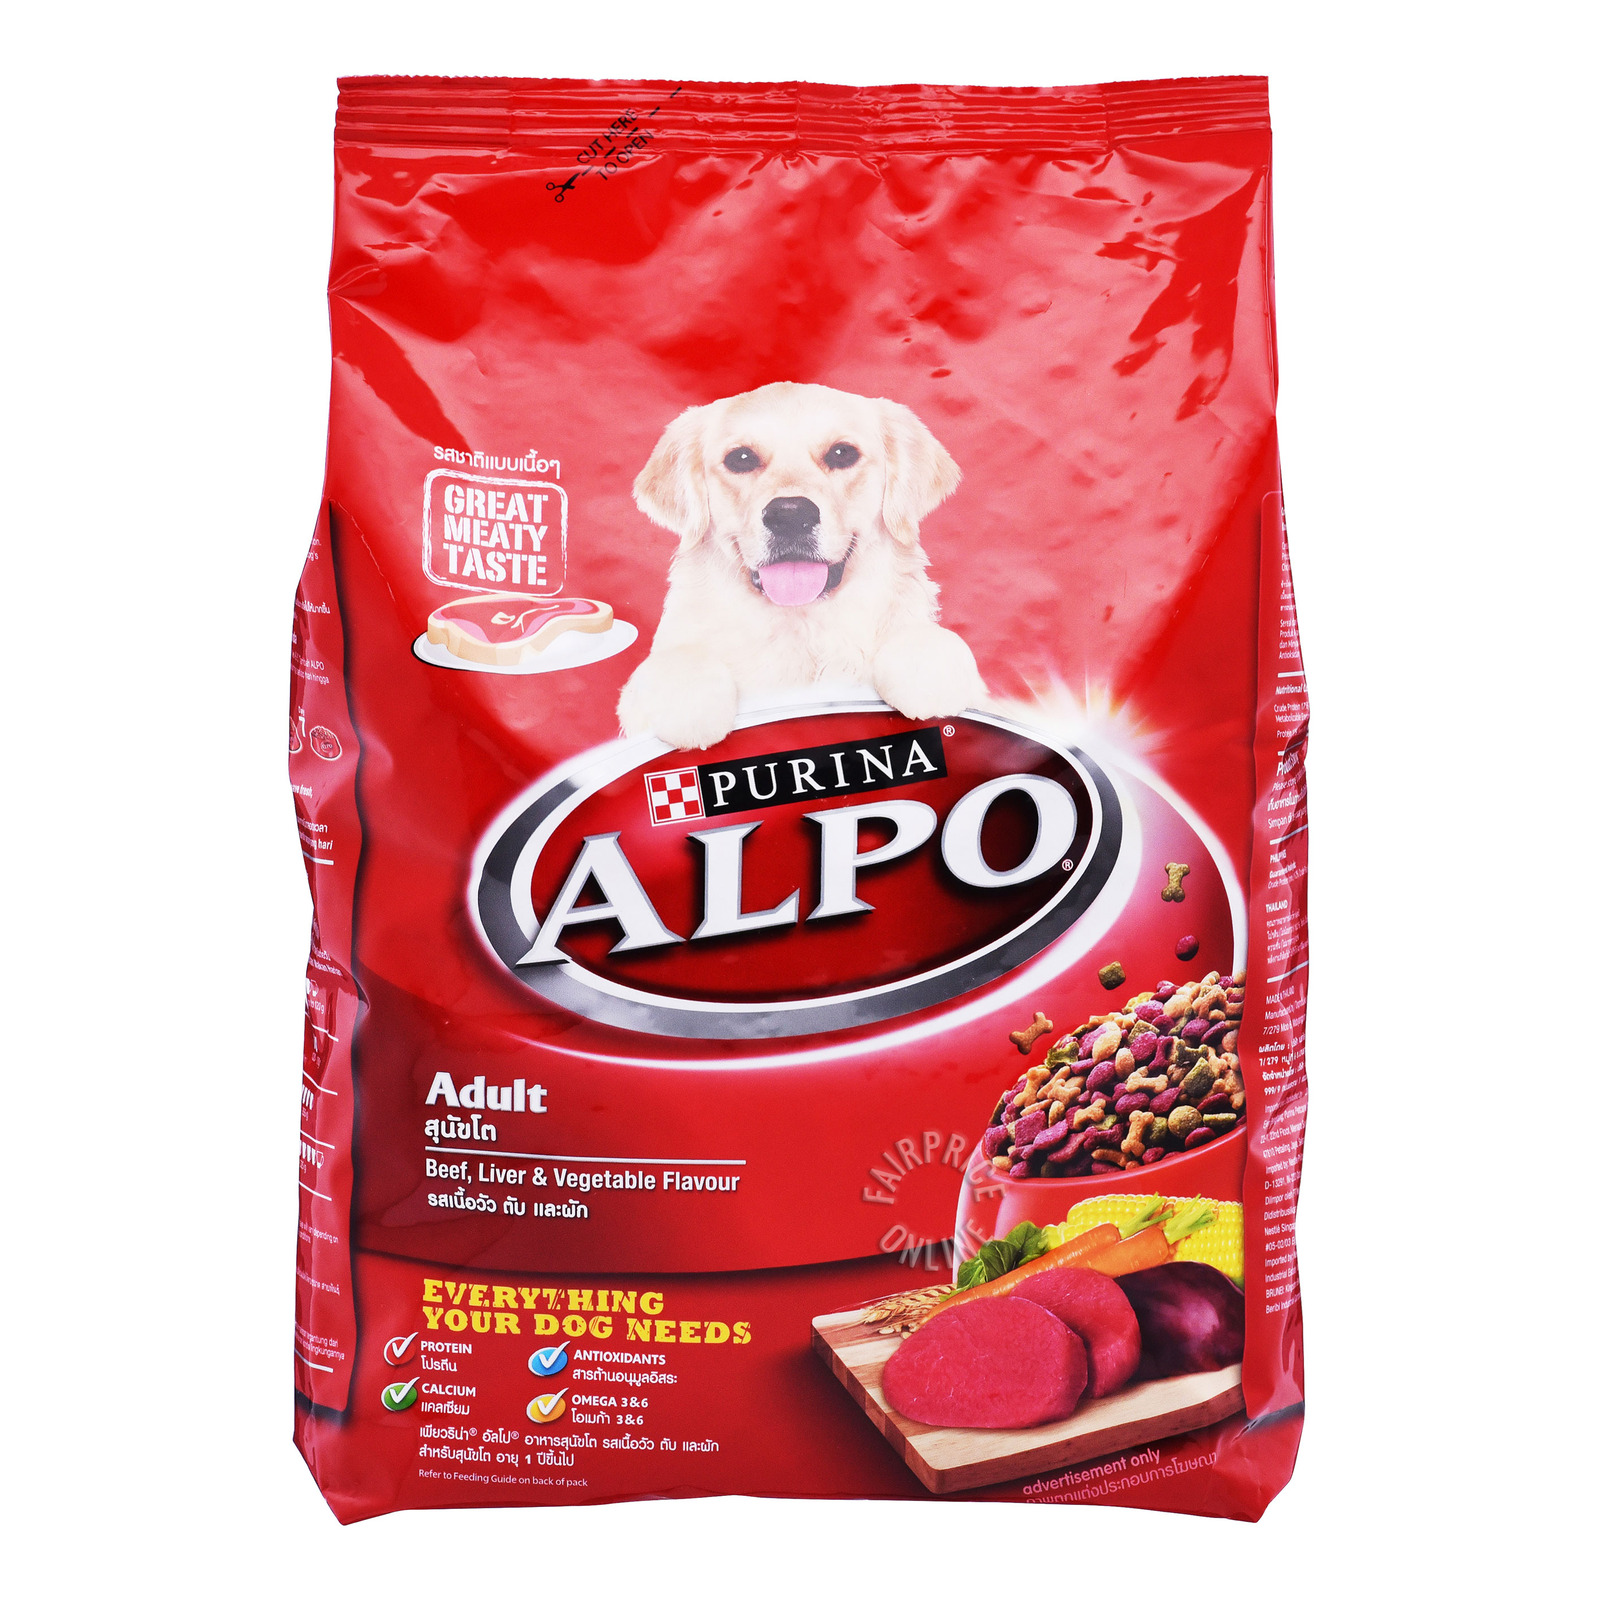 Purina Alpo Adult Dog Food - Beef, Liver & Vegetable